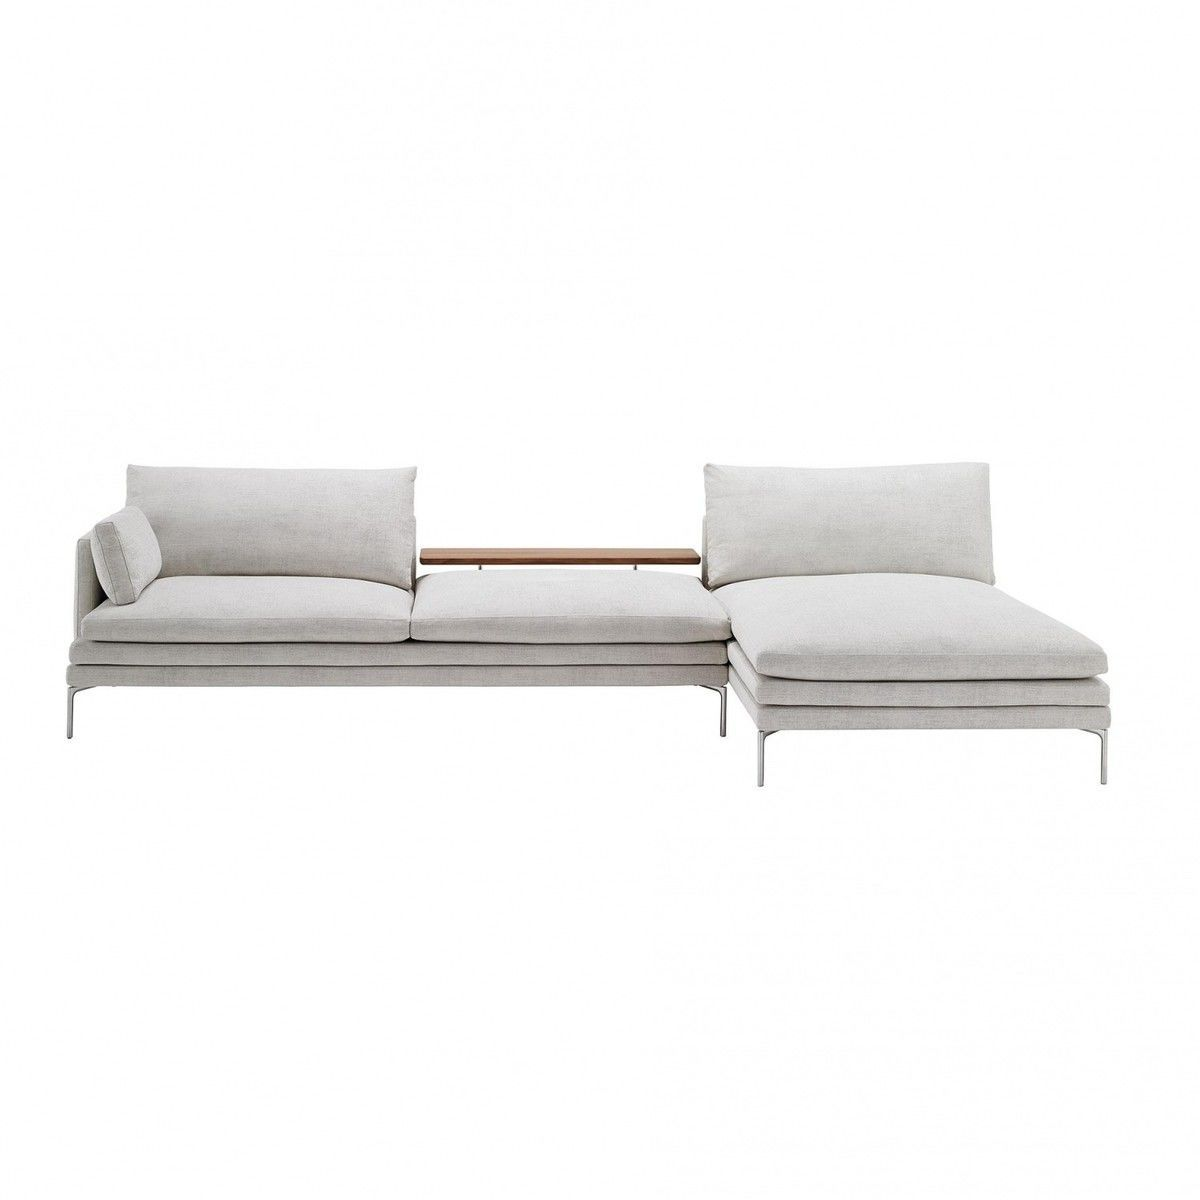 William sofa with chaise longue zanotta for Catalogos de sofas chaise longue